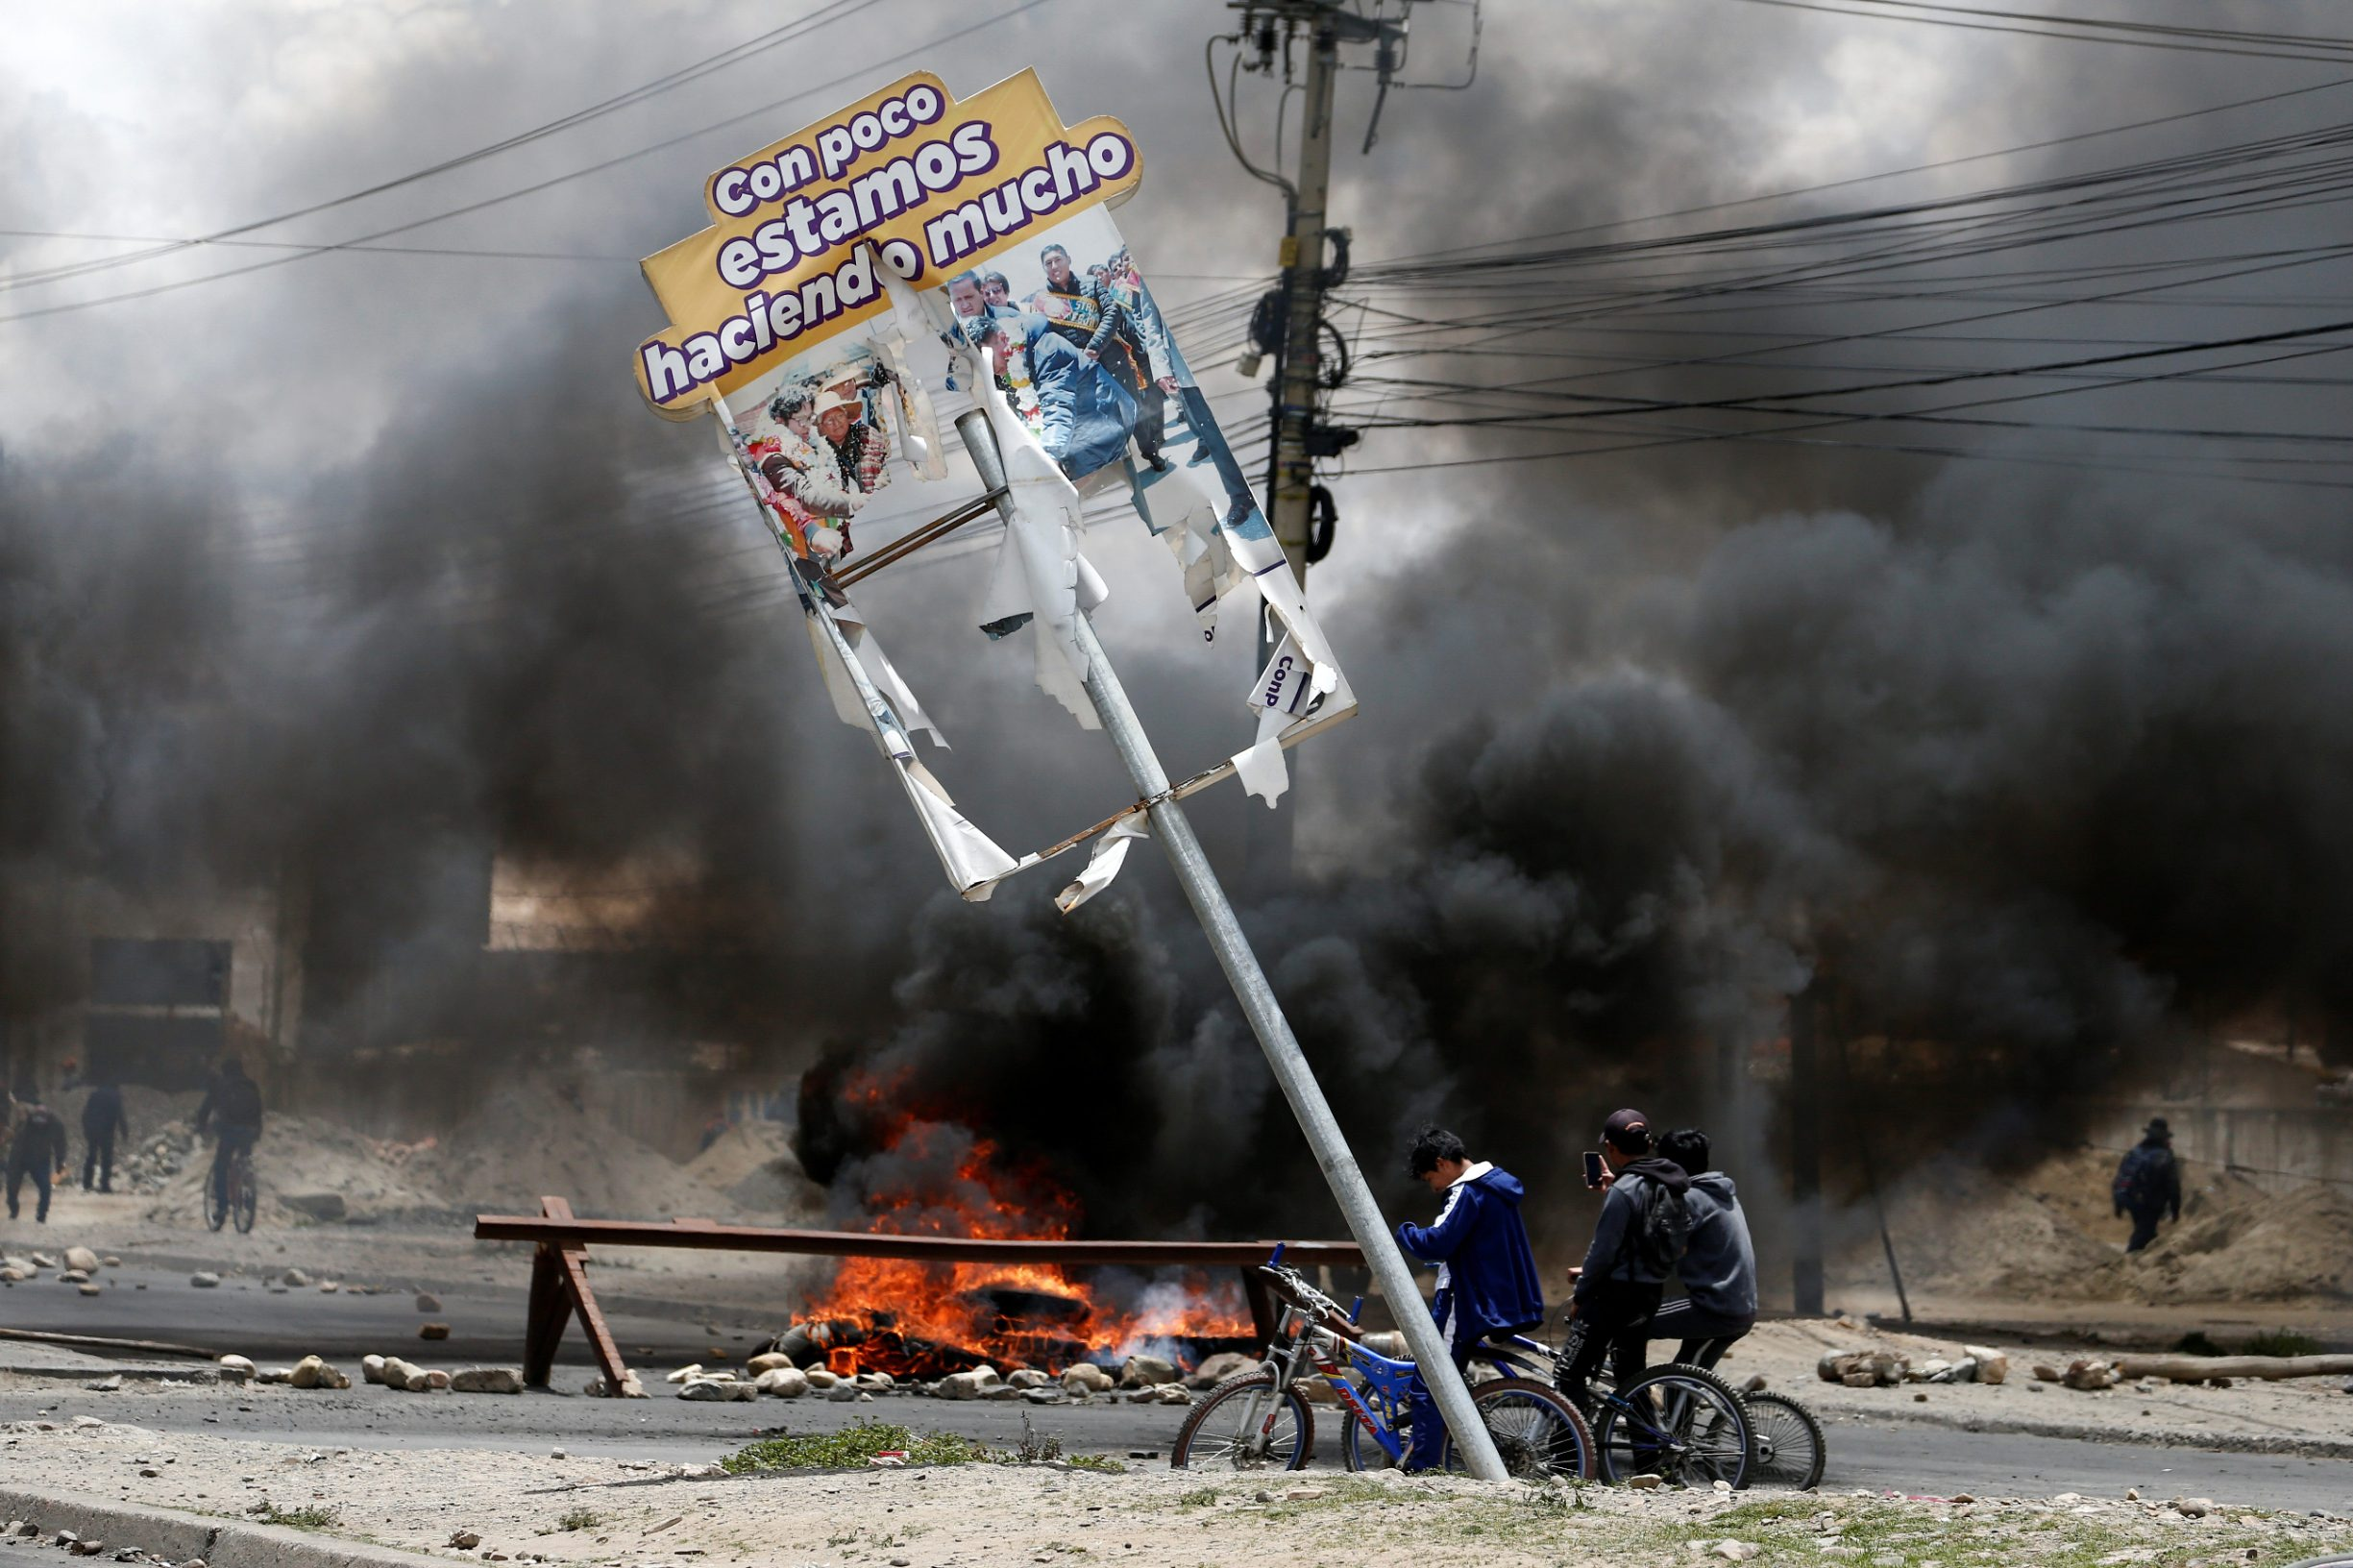 2019-11-19T182252Z_1962863679_RC2IED9N84IB_RTRMADP_3_BOLIVIA-ELECTION-PROTESTS